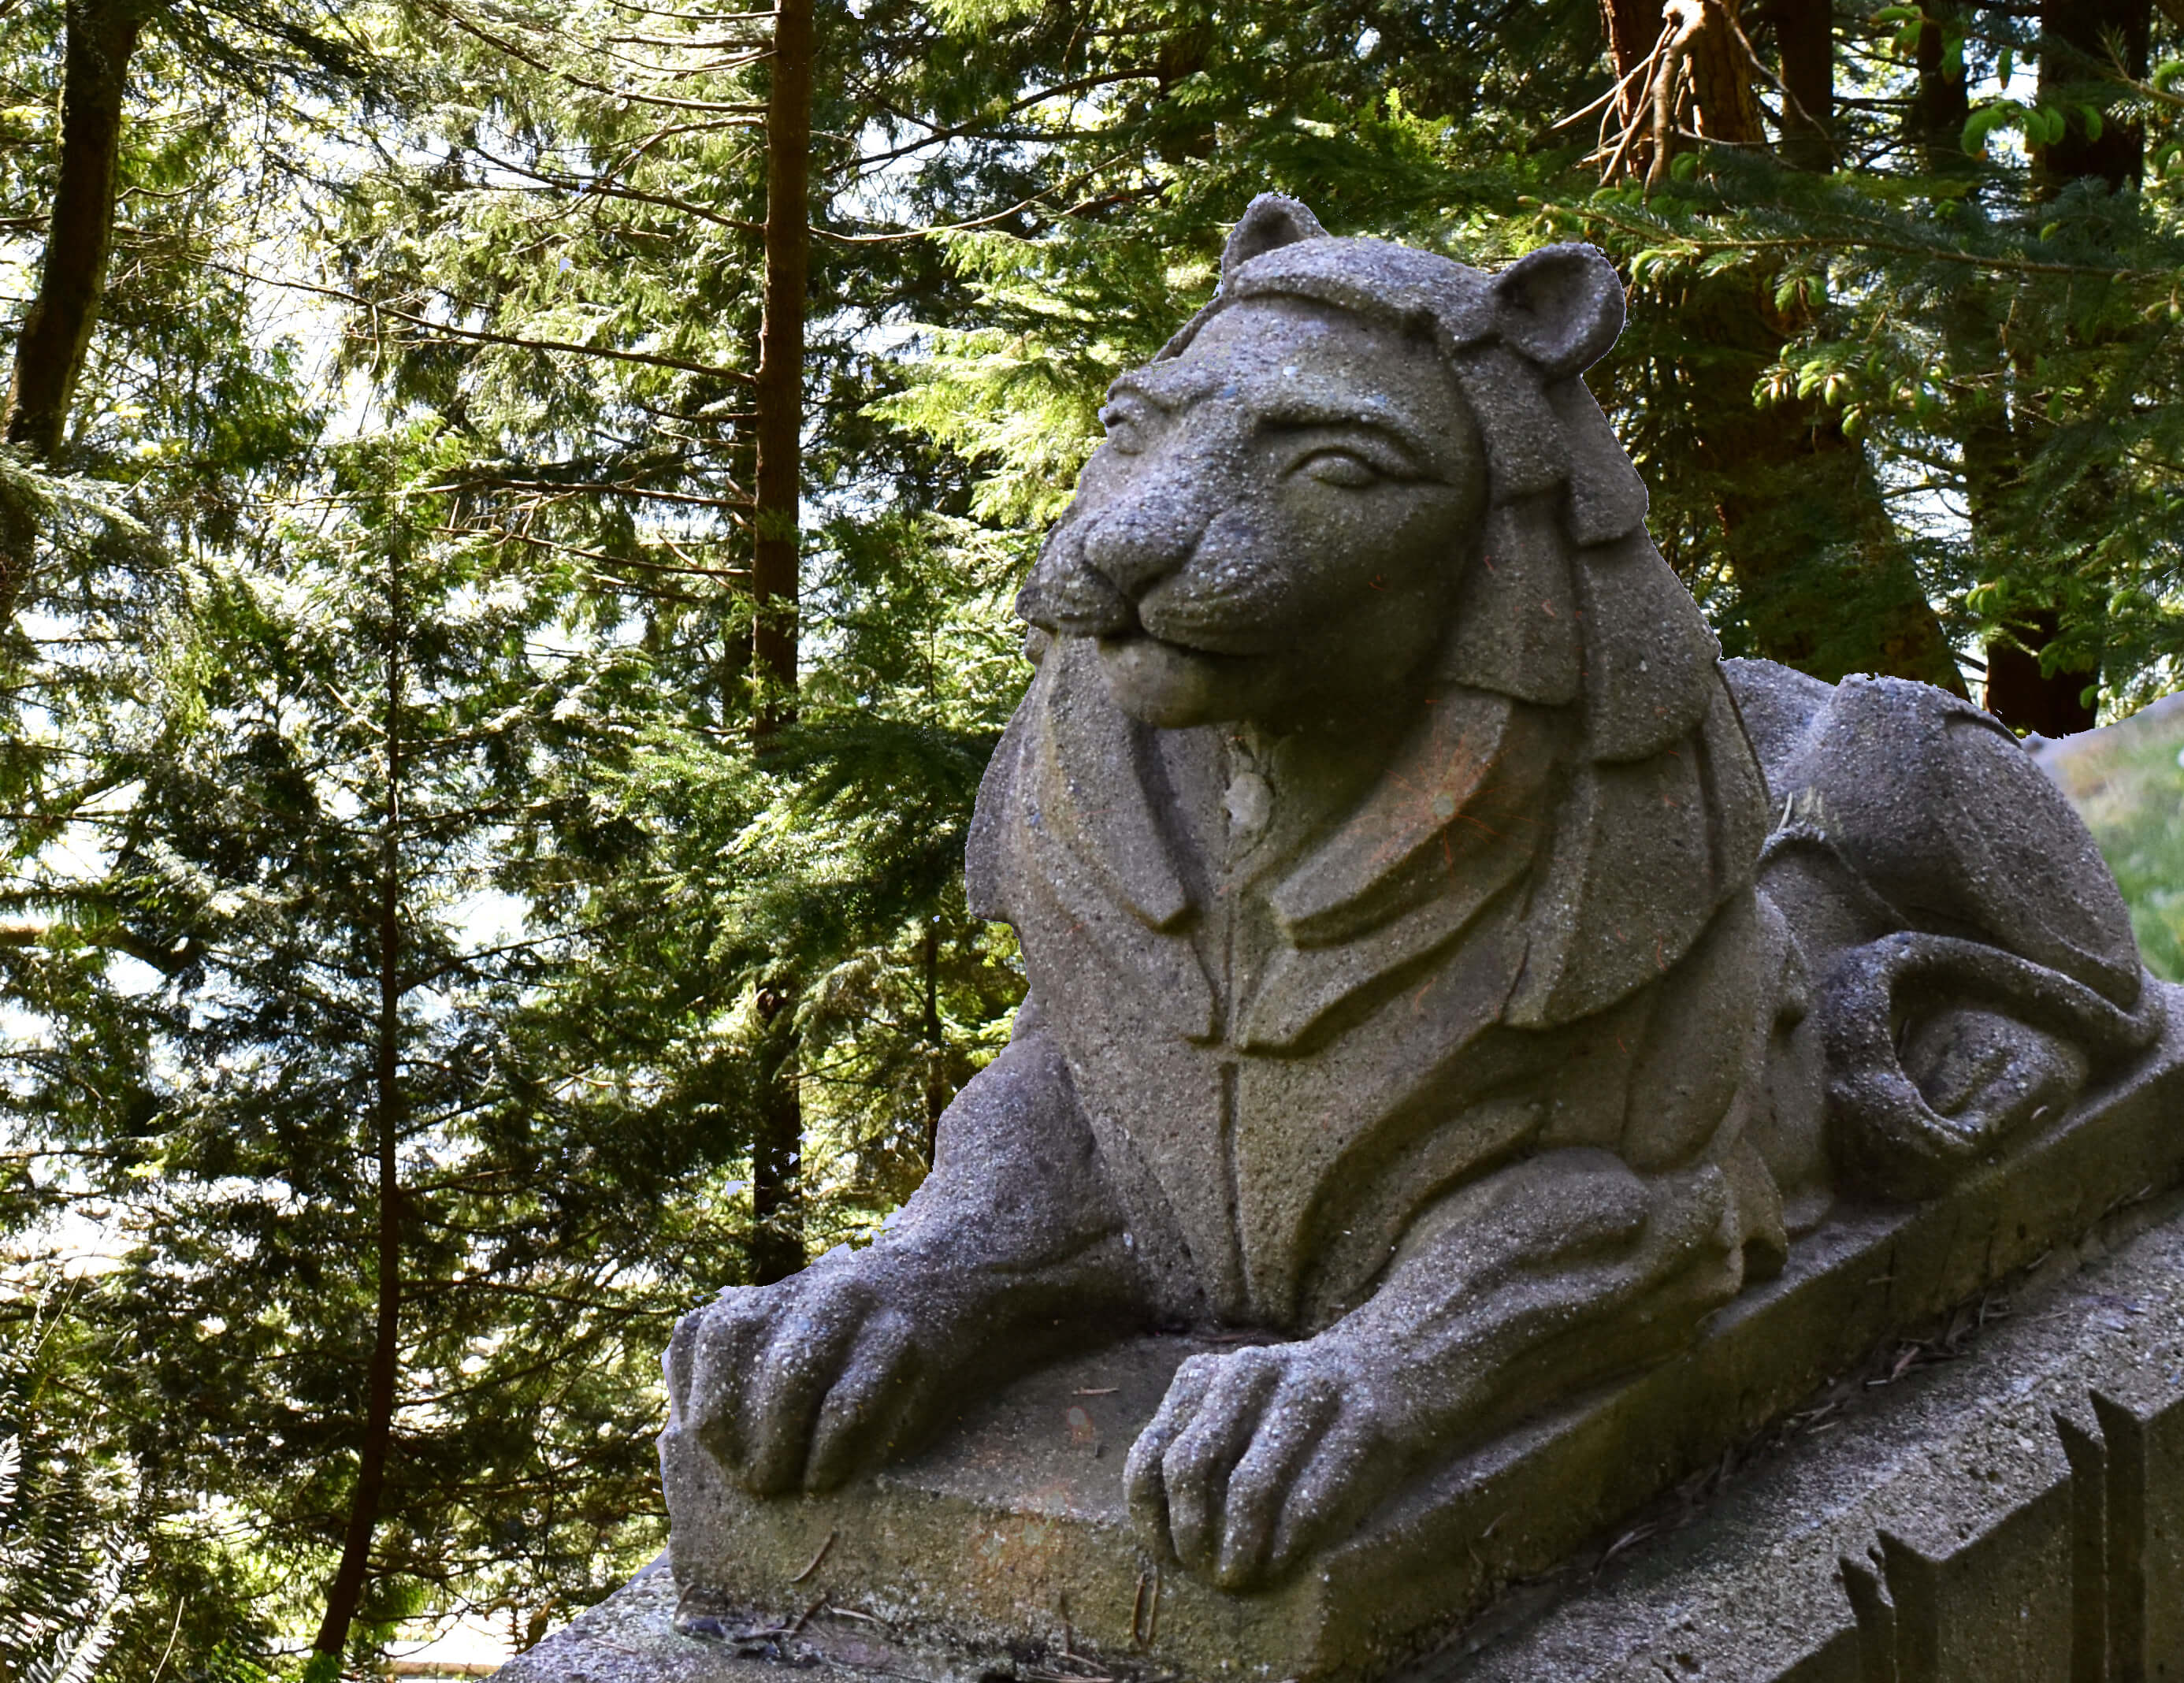 Stone lion in a forest - Stanley Park, BC